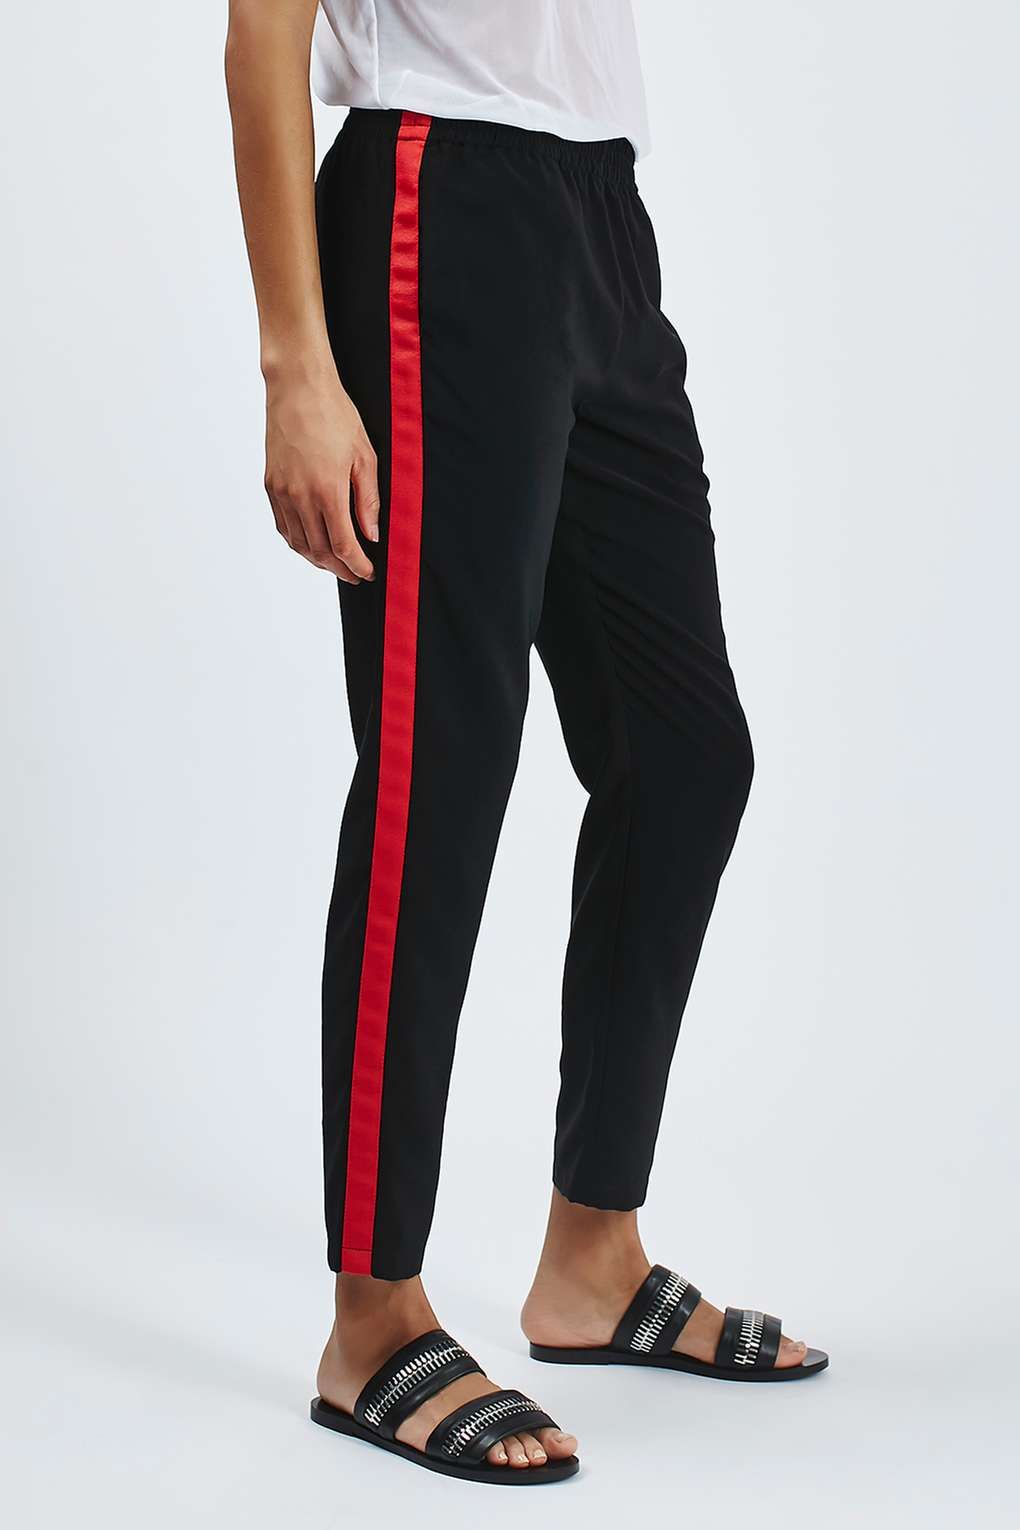 Side Stripe Jogger Side Stripe Trousers Joggers Outfit